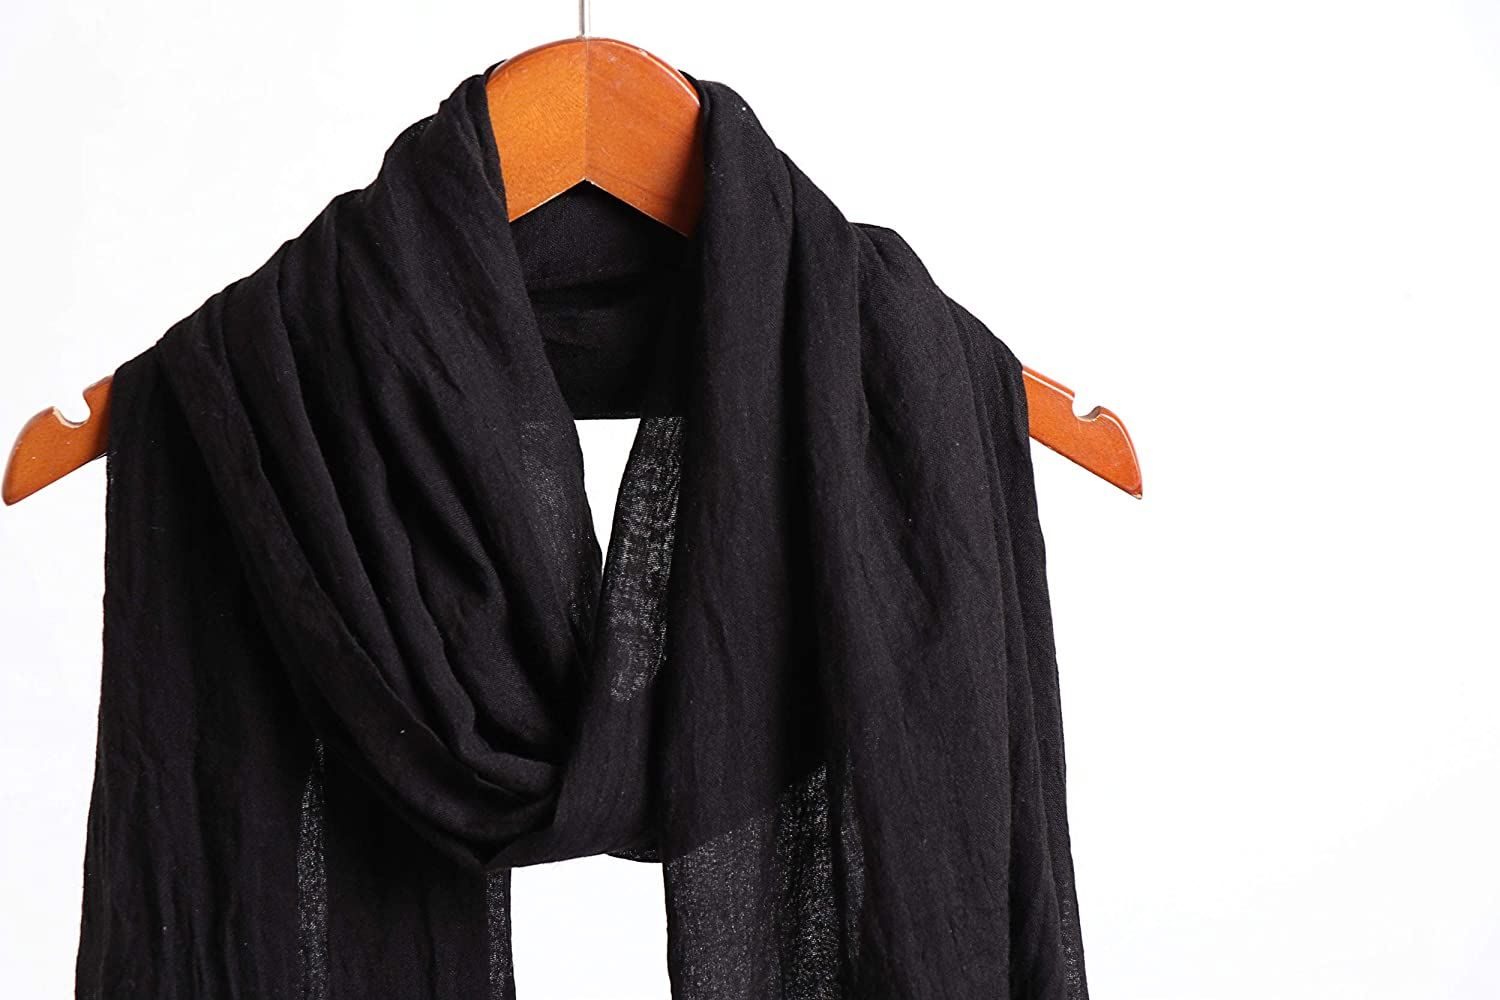 b19d57469 Cotton Feel Scarf Shawl Wrap Soft Lightweight Scarves And Wraps For Men And  Women. (Black) at Amazon Women's Clothing store